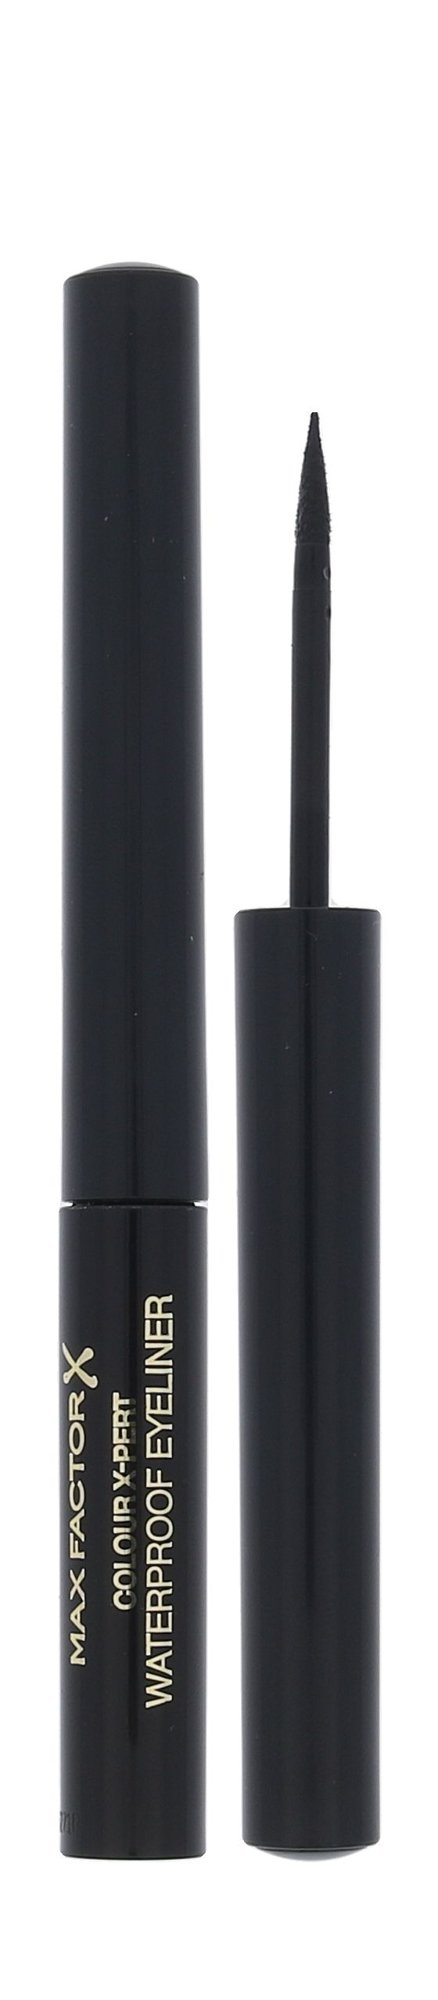 Max Factor Colour X-pert Cosmetic 5ml 01 Deep Black